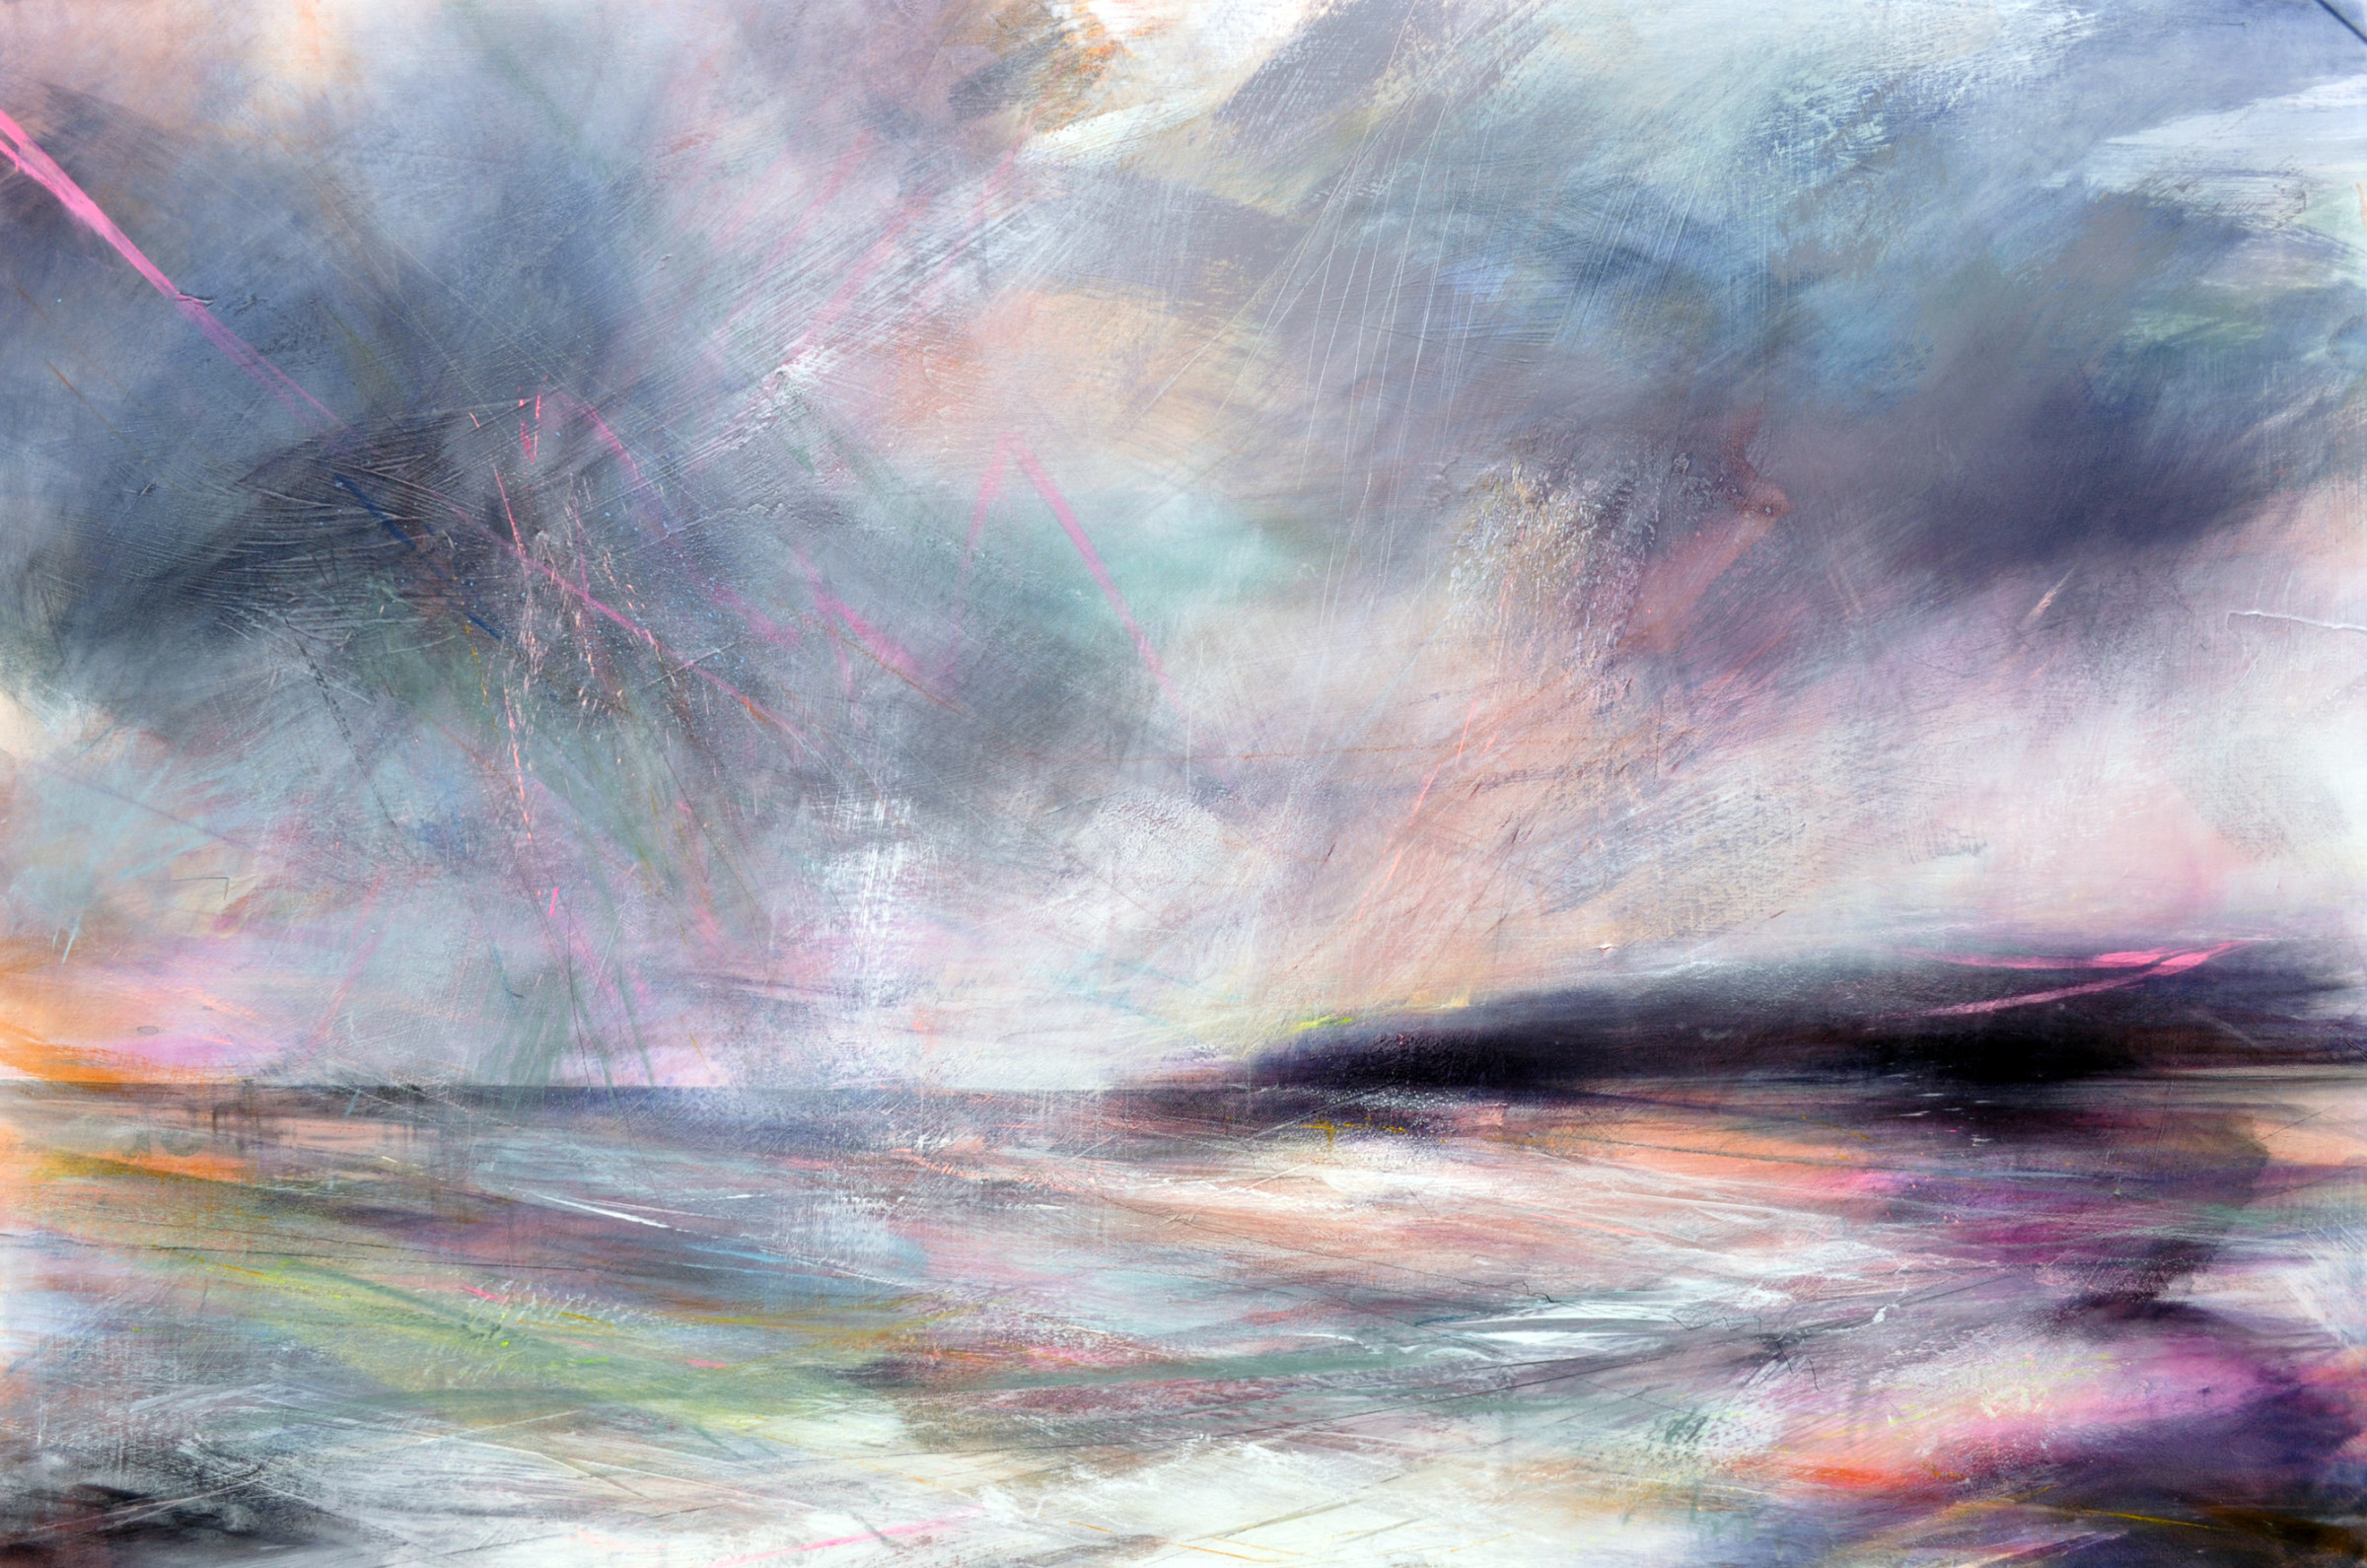 <span class=&#34;link fancybox-details-link&#34;><a href=&#34;/artists/90-freya-horsley/works/4164-freya-horsley-waiting-2017/&#34;>View Detail Page</a></span><div class=&#34;artist&#34;><strong>Freya Horsley</strong></div> <div class=&#34;title&#34;><em>Waiting</em>, 2017</div> <div class=&#34;signed_and_dated&#34;>signed on reverse</div> <div class=&#34;medium&#34;>mixed media on canvas</div> <div class=&#34;dimensions&#34;>80 x 120 cm<br /> 31 1/2 x 47 1/4 inches</div><div class=&#34;copyright_line&#34;>OwnArt: £ 175 x 10 Months, 0% APR</div>